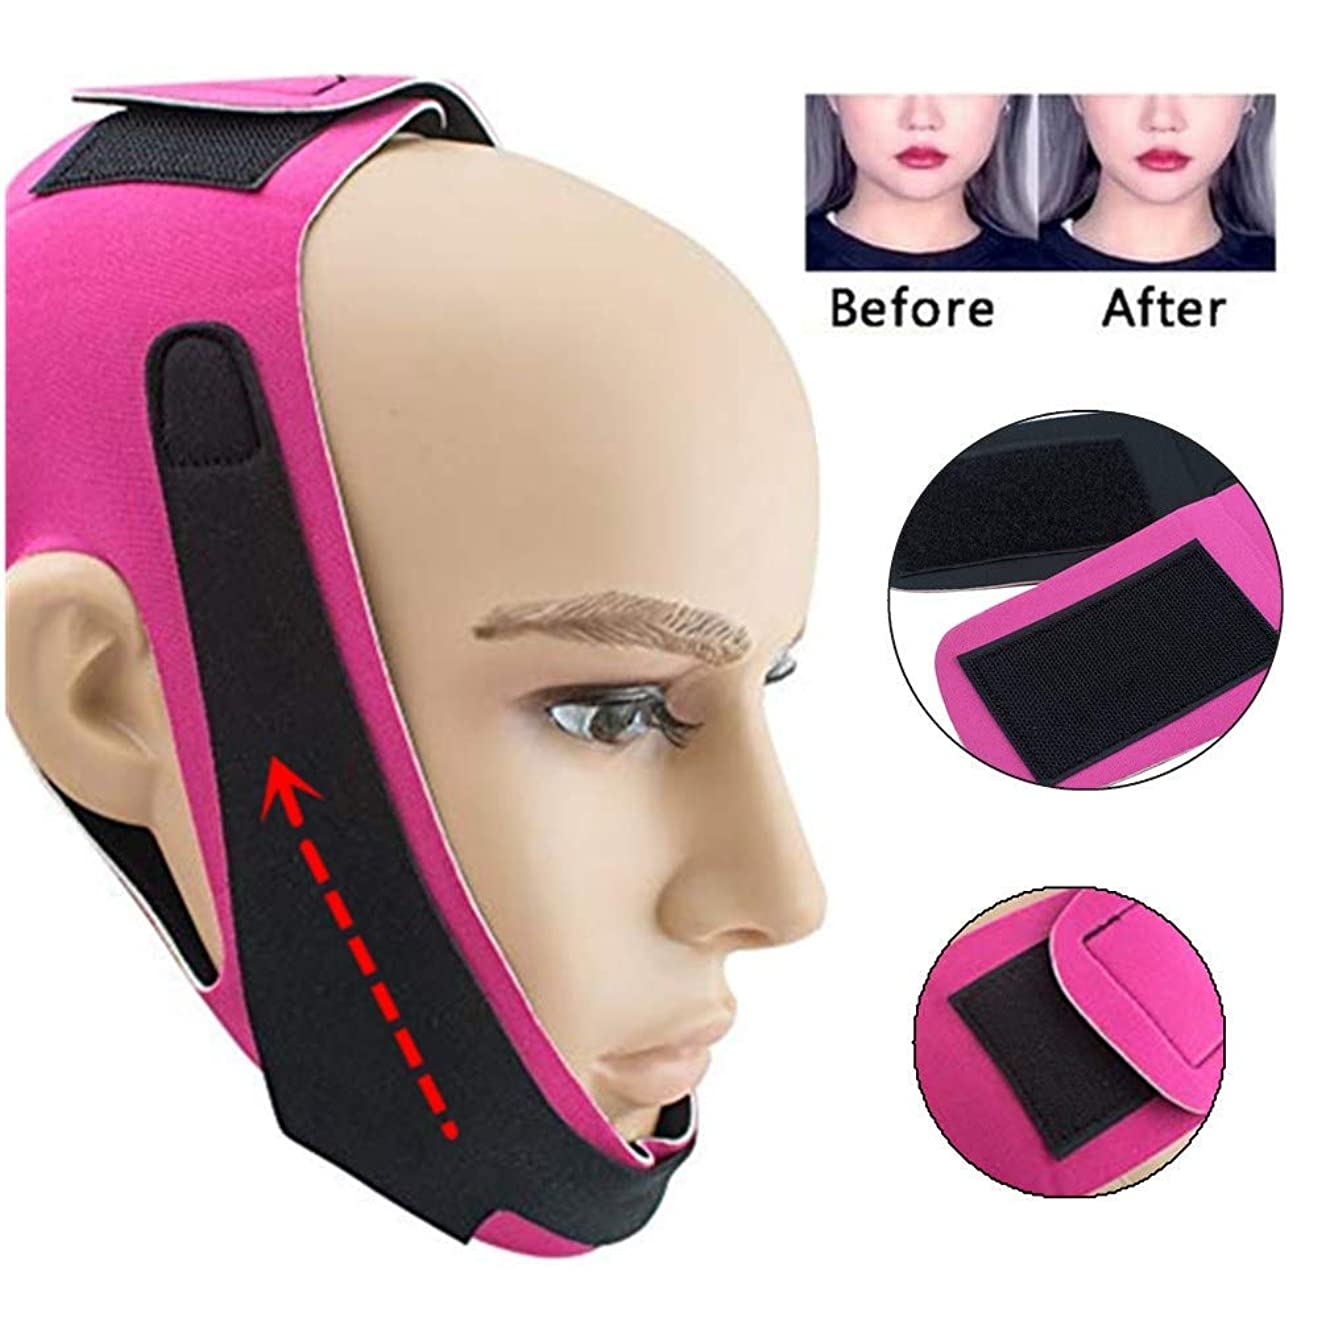 ストライク洞察力のある本Thin Face Bandage Face Slimmer Get Rid Of Double Chin Create V-Line Face Shapes Chin Cheek Lift Up Anti Wrinkle Lifting Belt Face Massage Tool for Women and Girls 141[並行輸入]